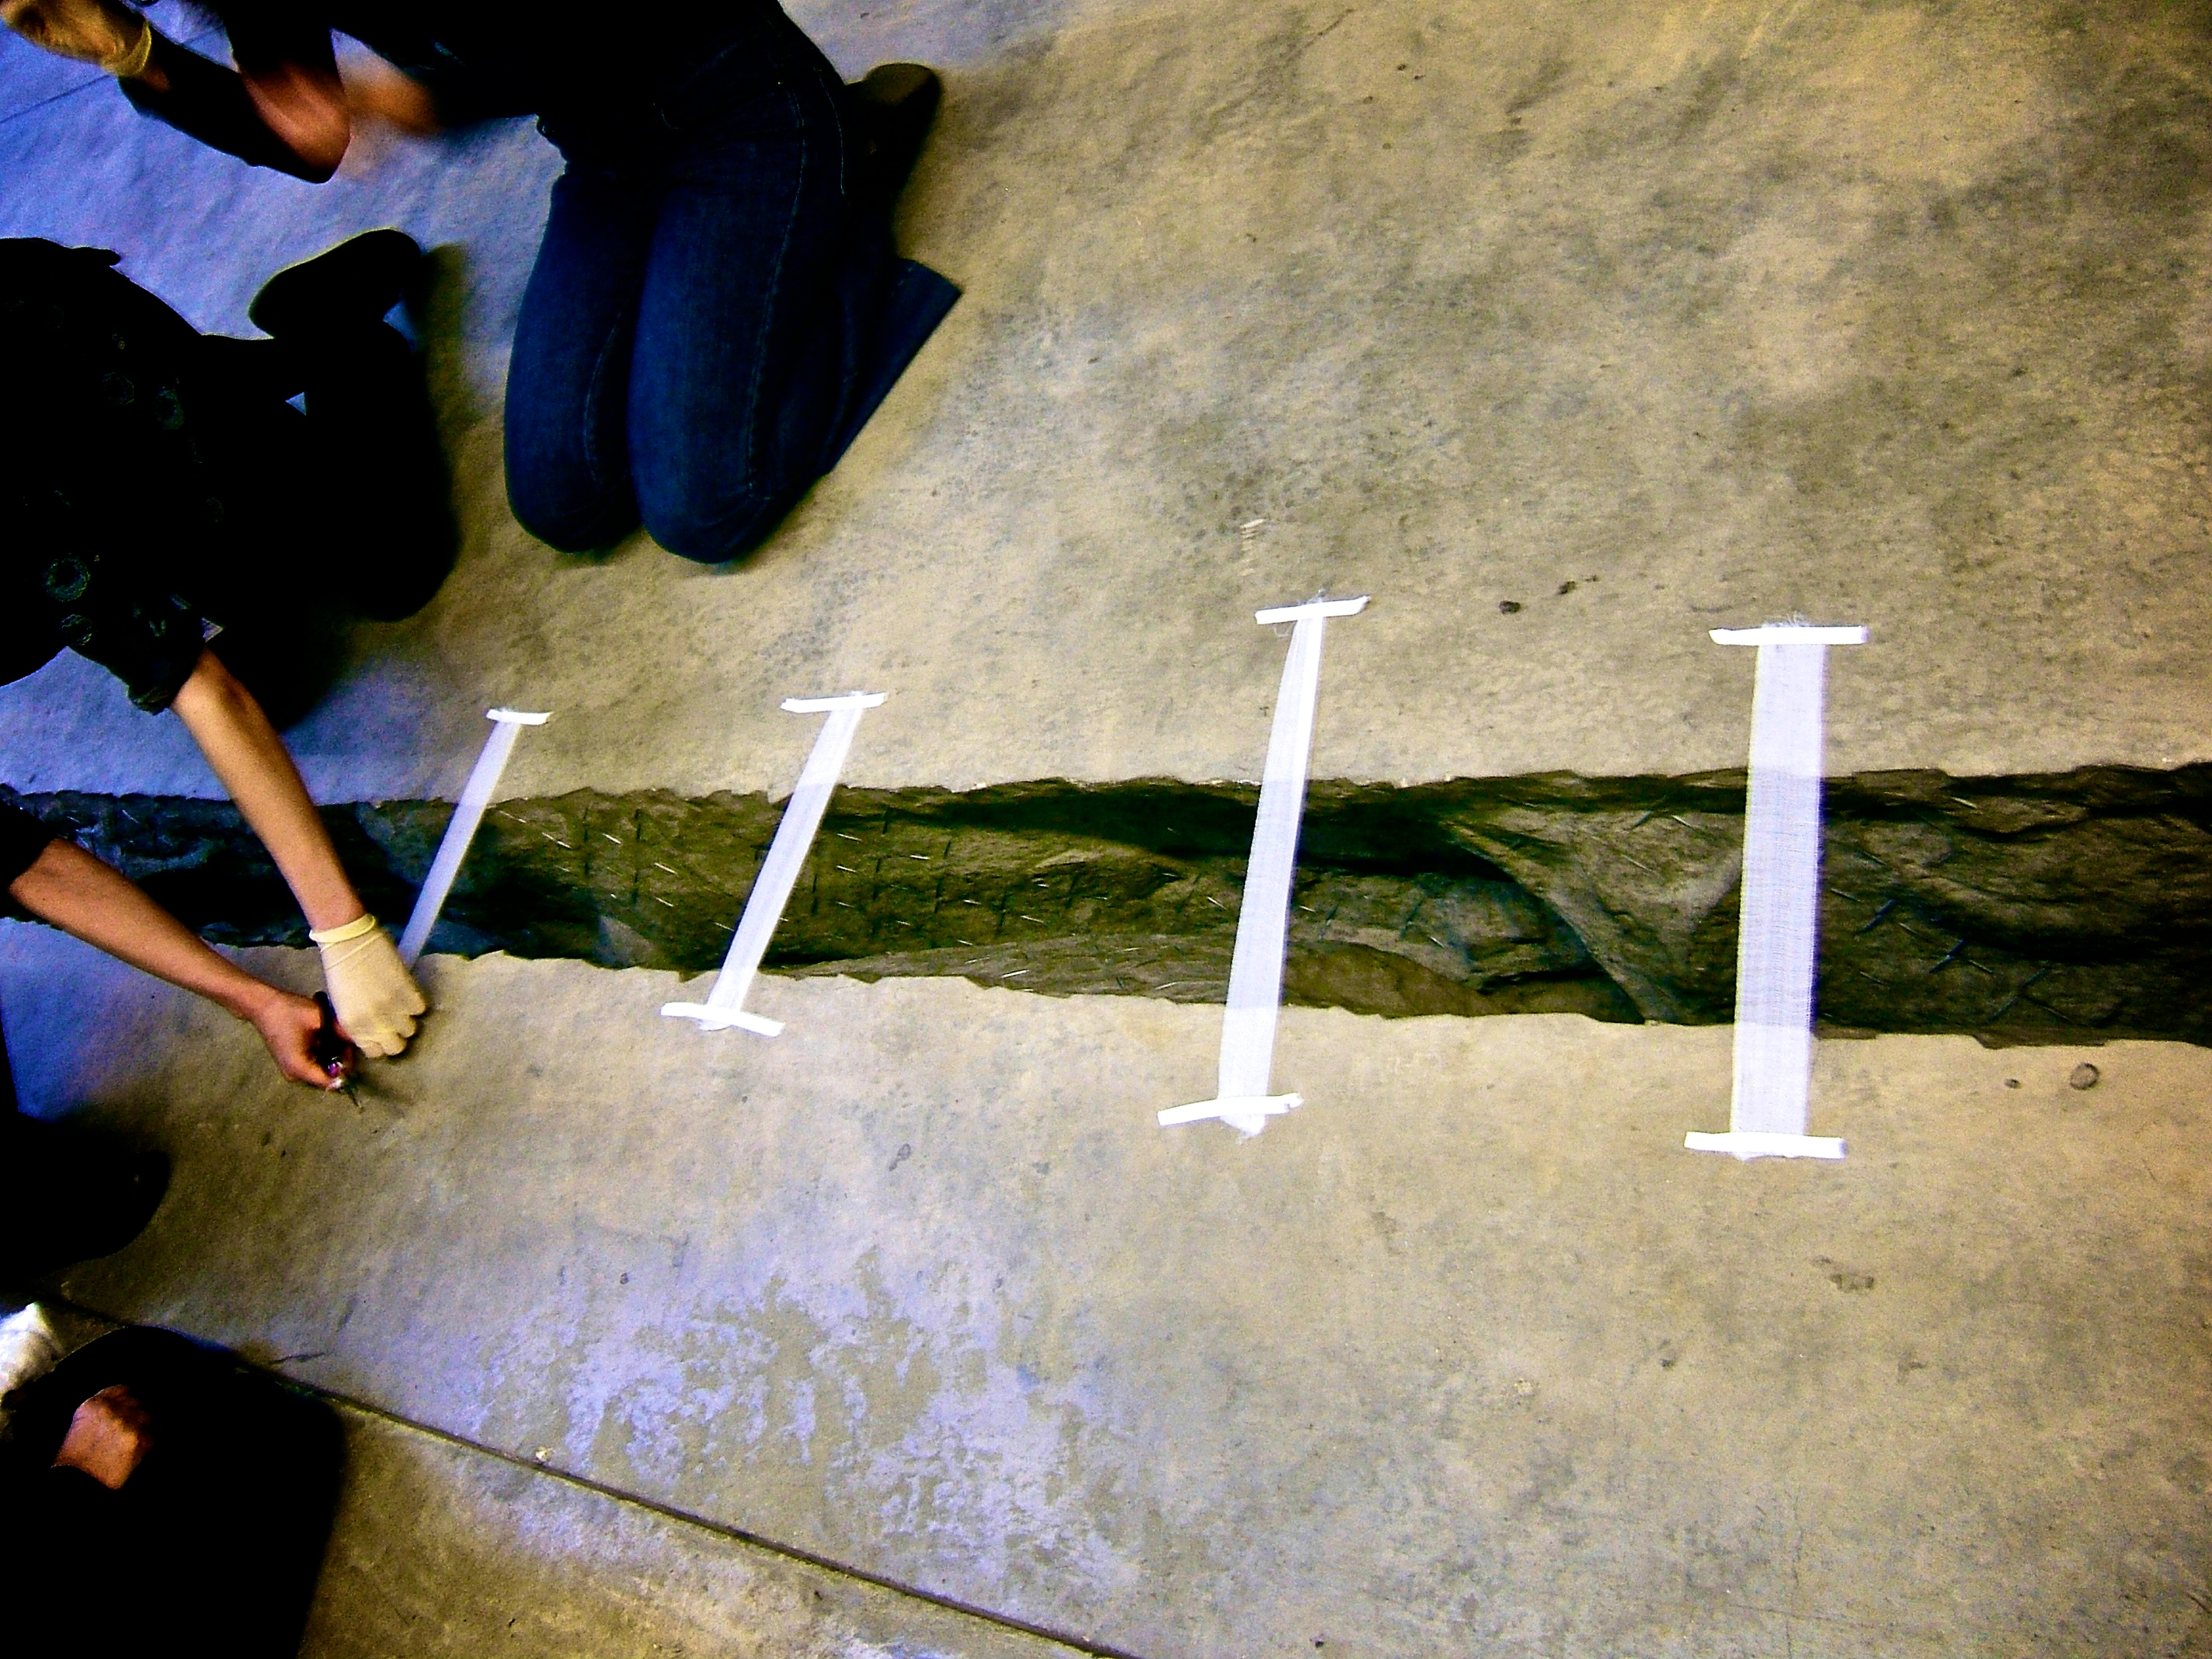 pieces of white tape stuck across a large crack in a concrete floor